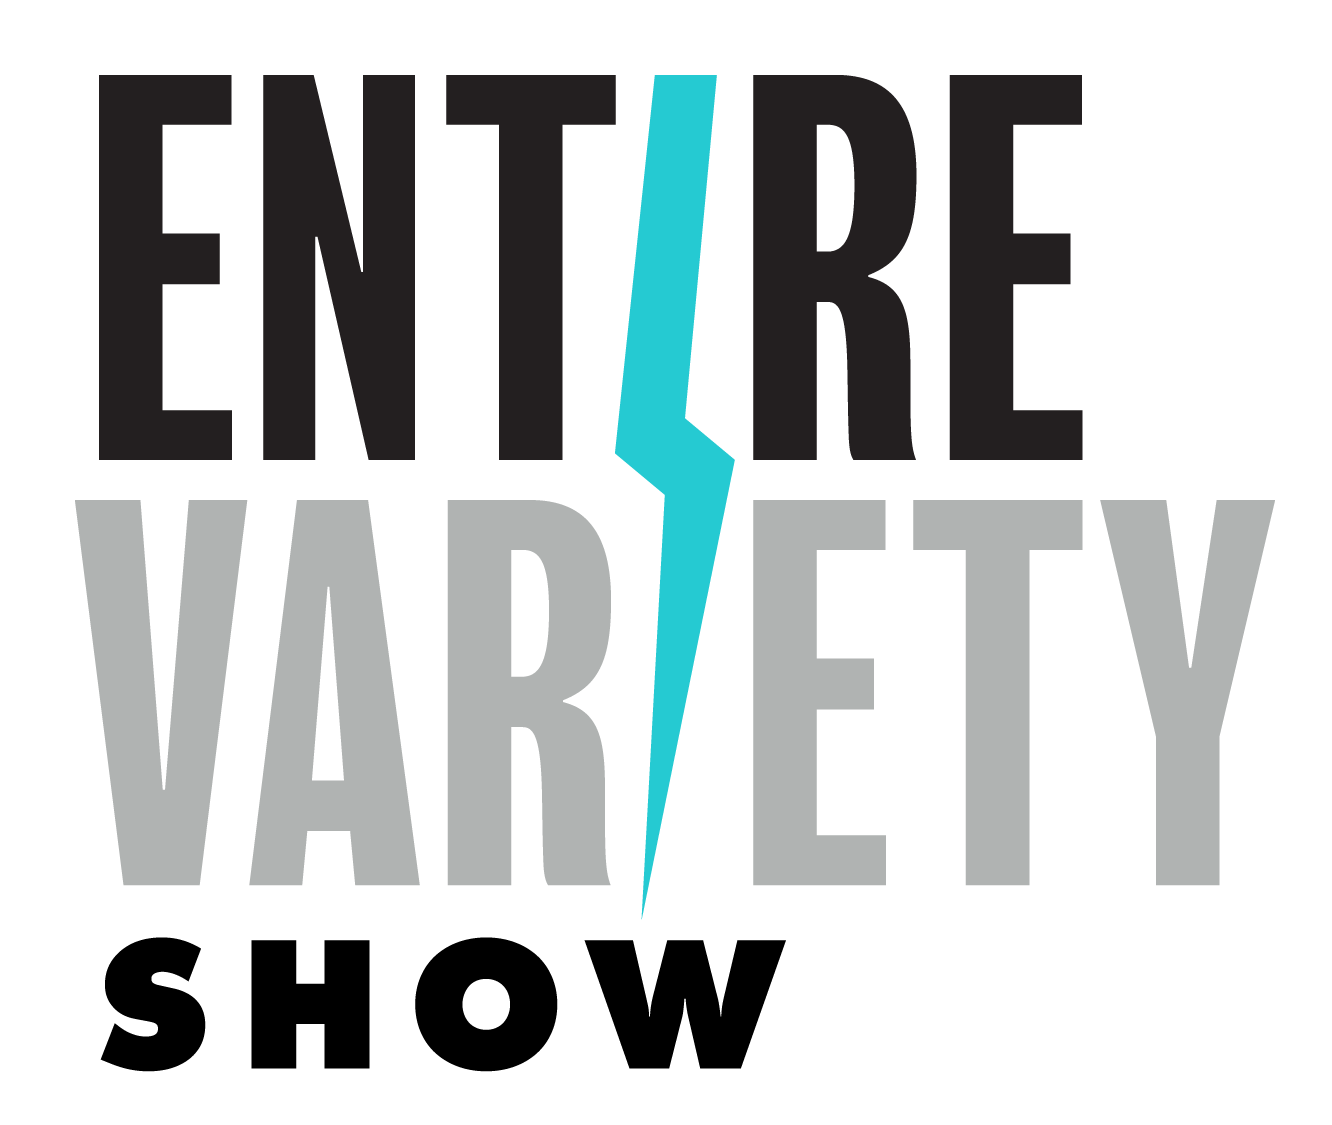 Entire Variety Show - Event Planer